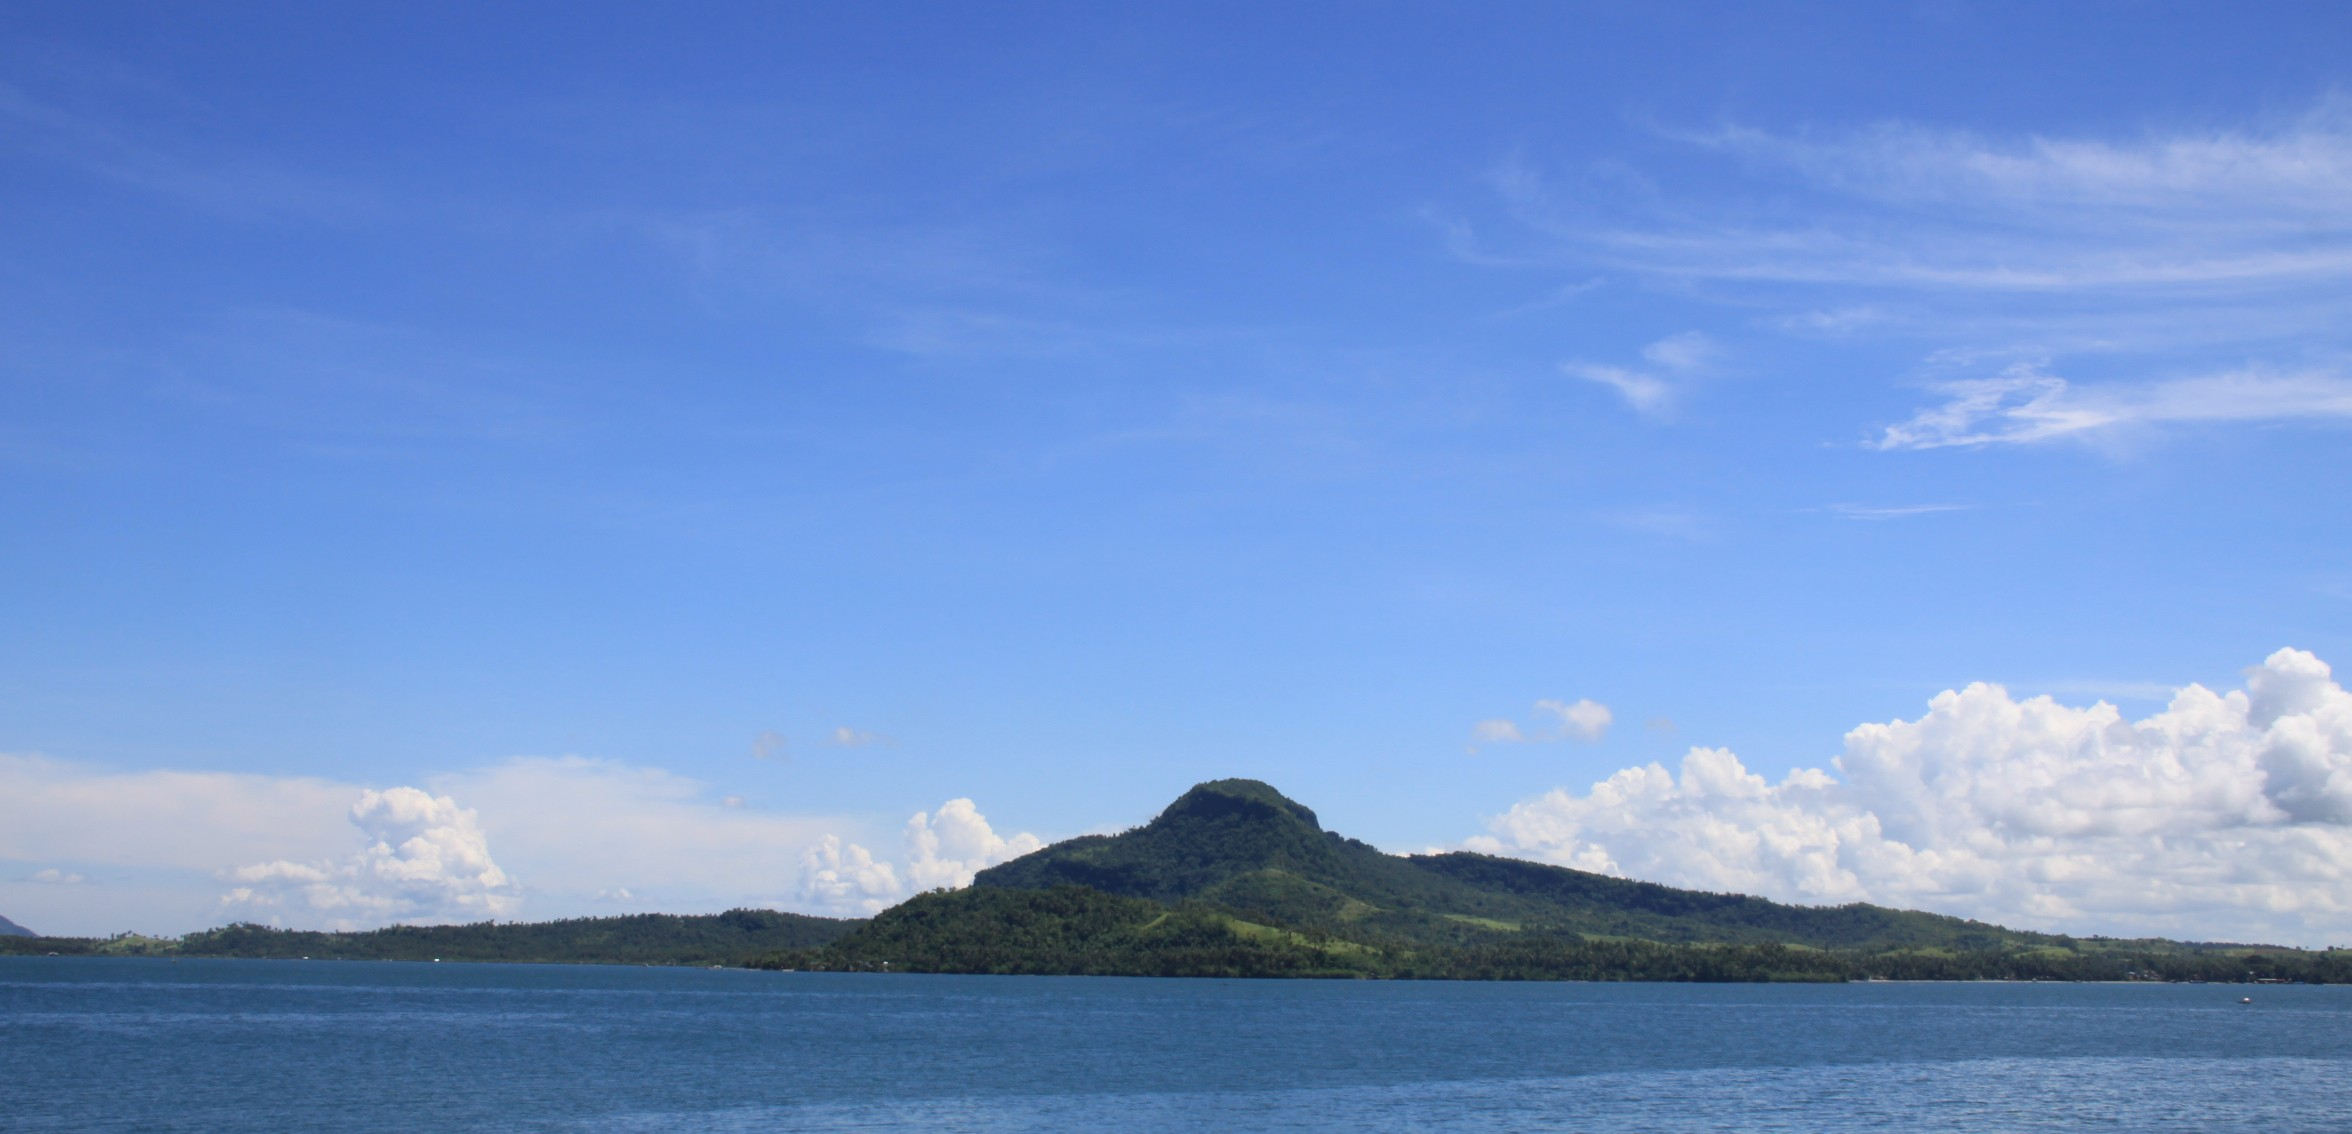 Mount Danglay